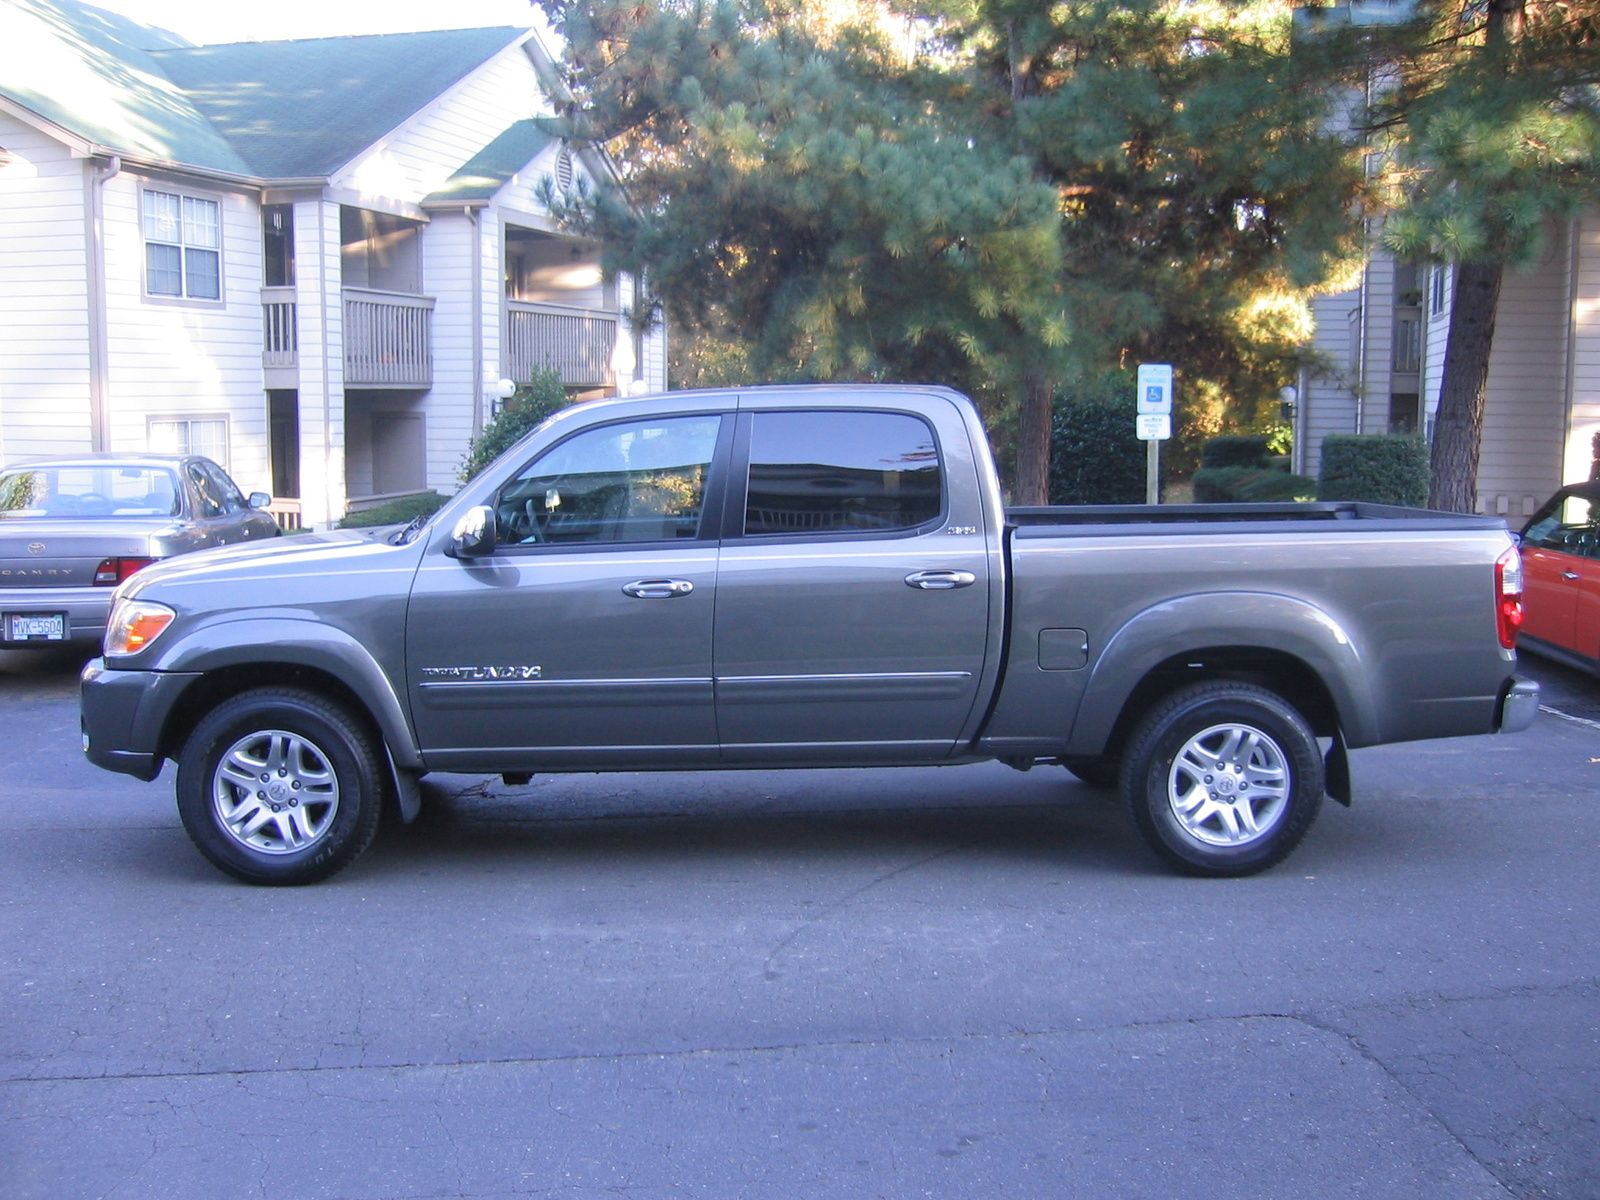 2006 toyota tundra sr5 4dr double cab sb wanna wheels pinterest 2006 toyota tundra toyota. Black Bedroom Furniture Sets. Home Design Ideas